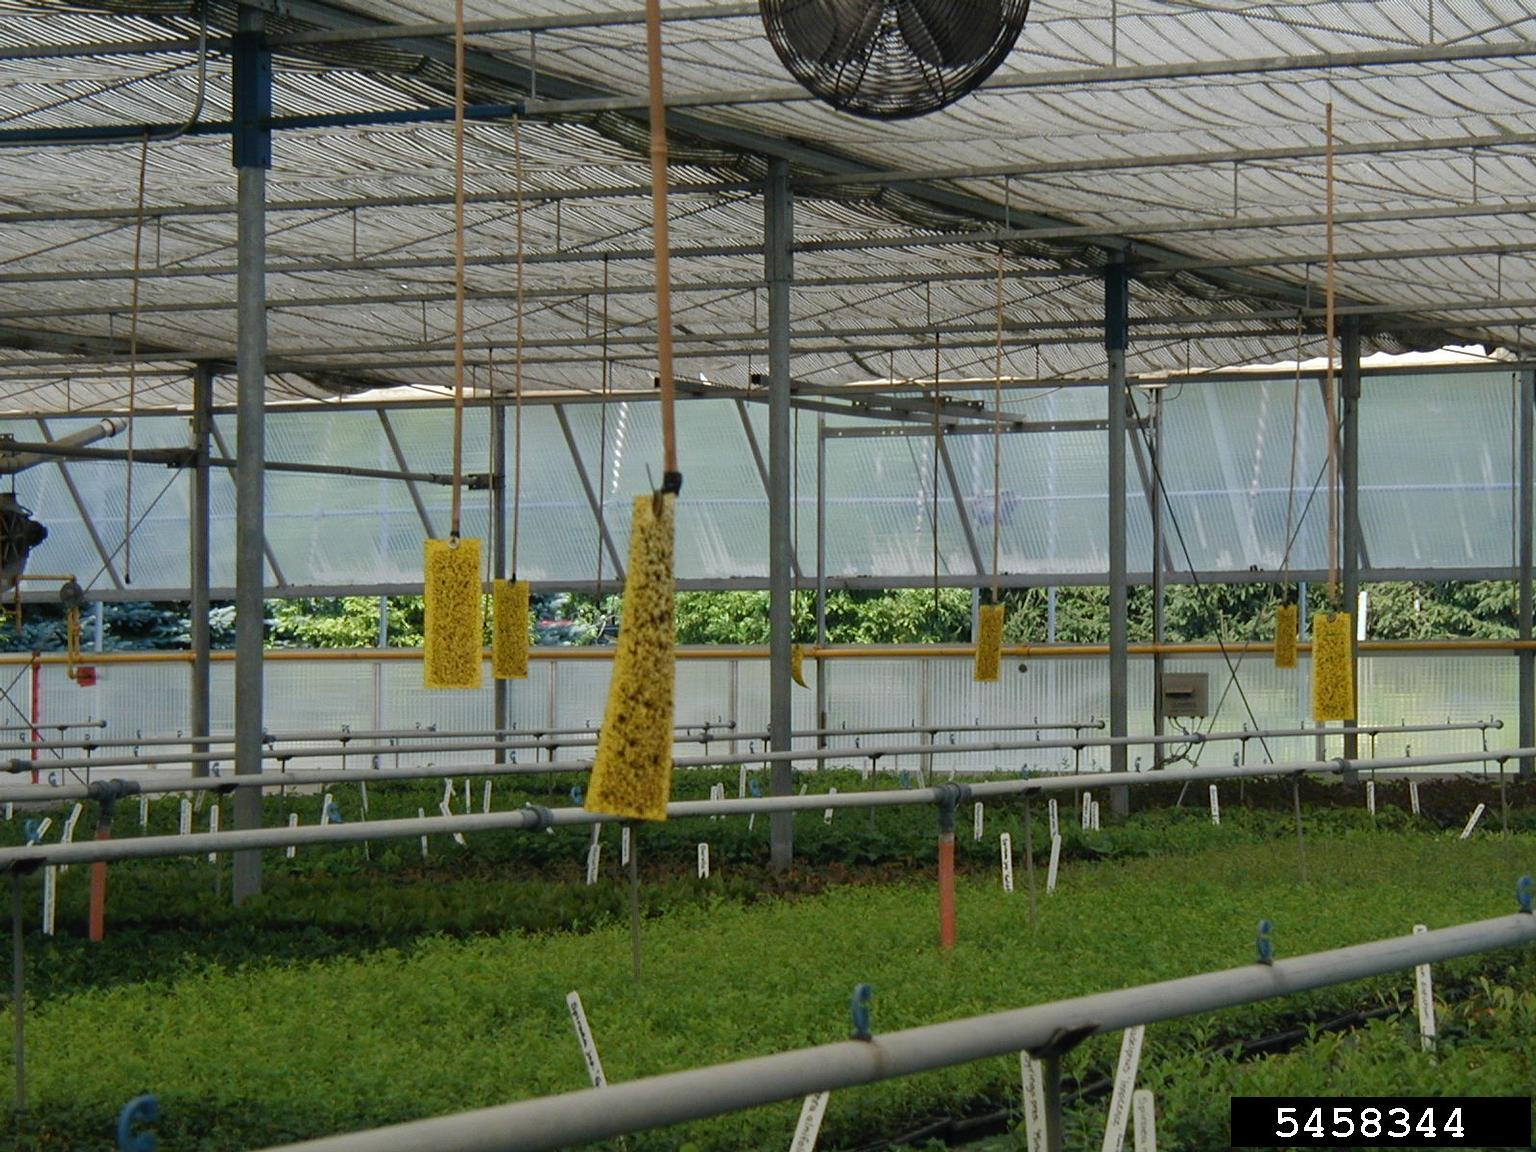 Yellow sticky cards in a commercial greenhouse